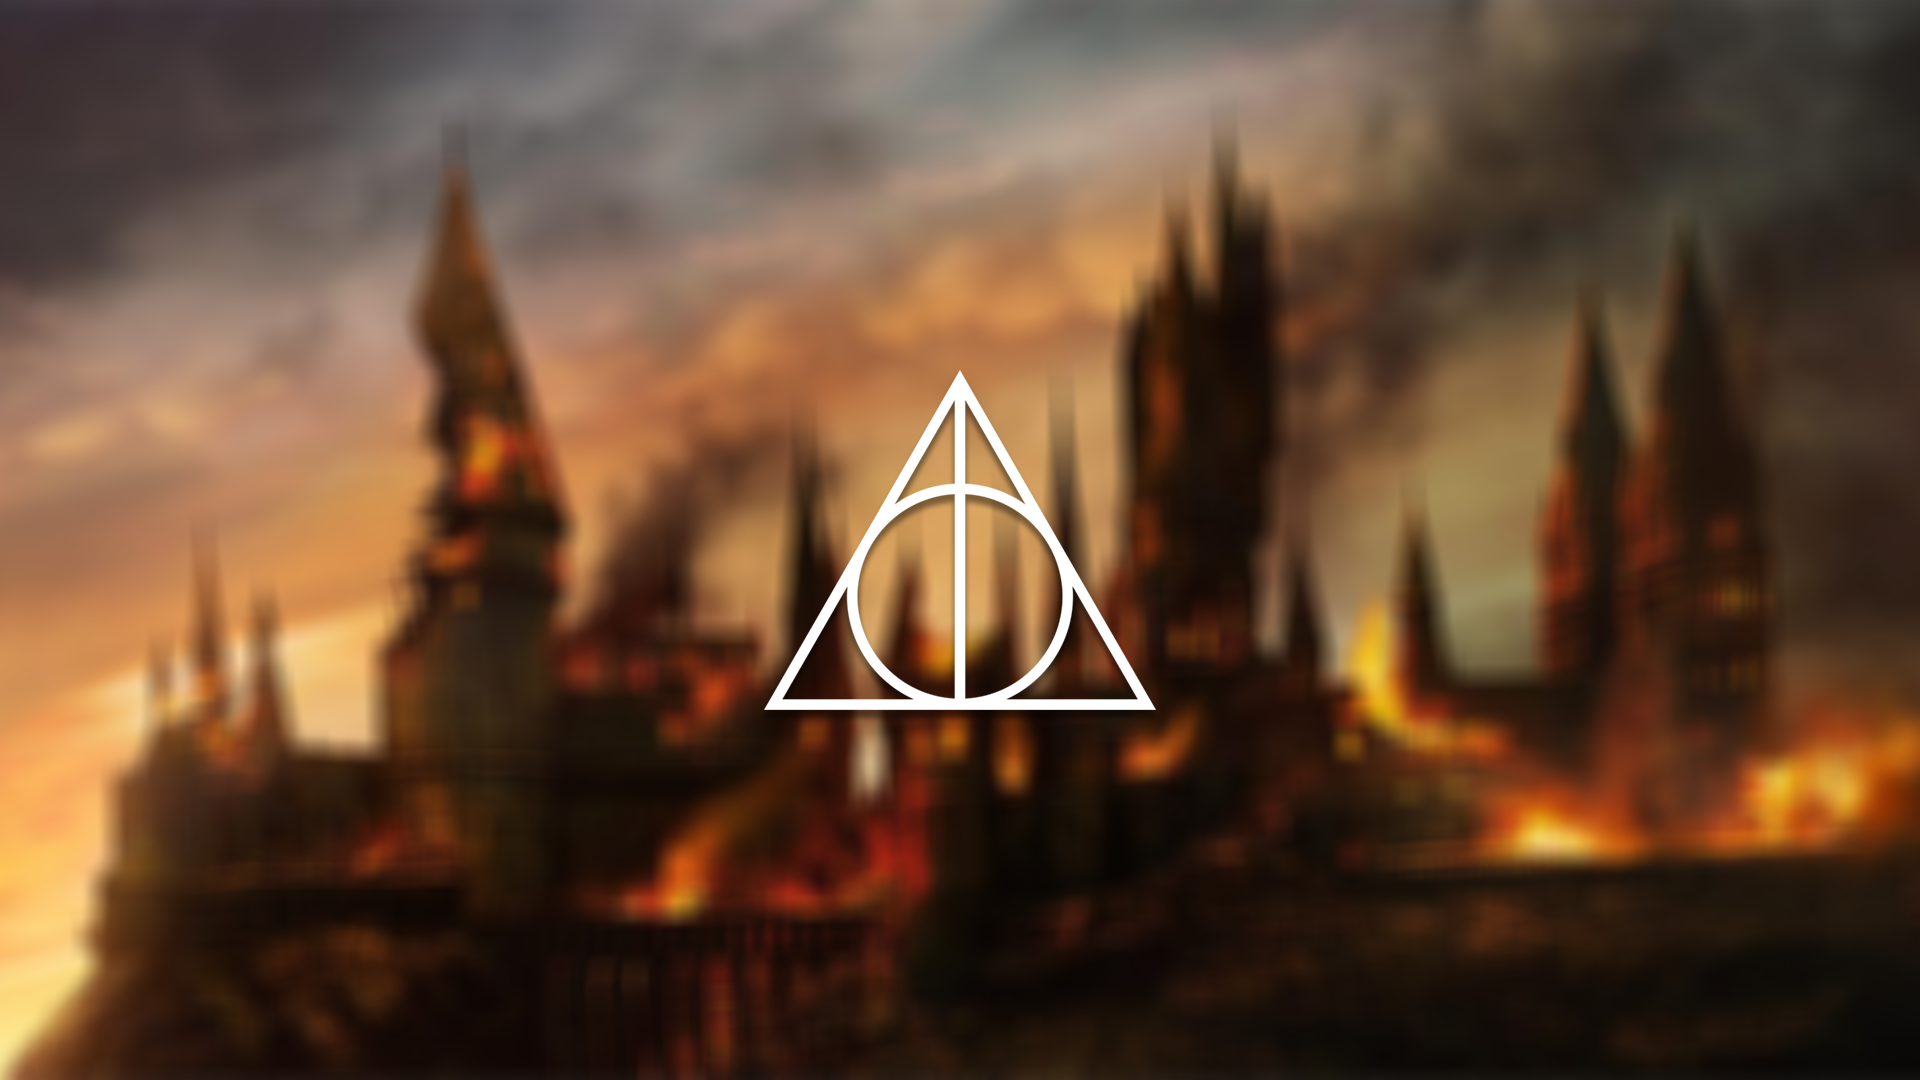 Fantastic Wallpaper Harry Potter Full Hd - wallpaper_deathly_hallows__harry_potter__by_suzigan96-d9pjiau  Pictures_332942.png